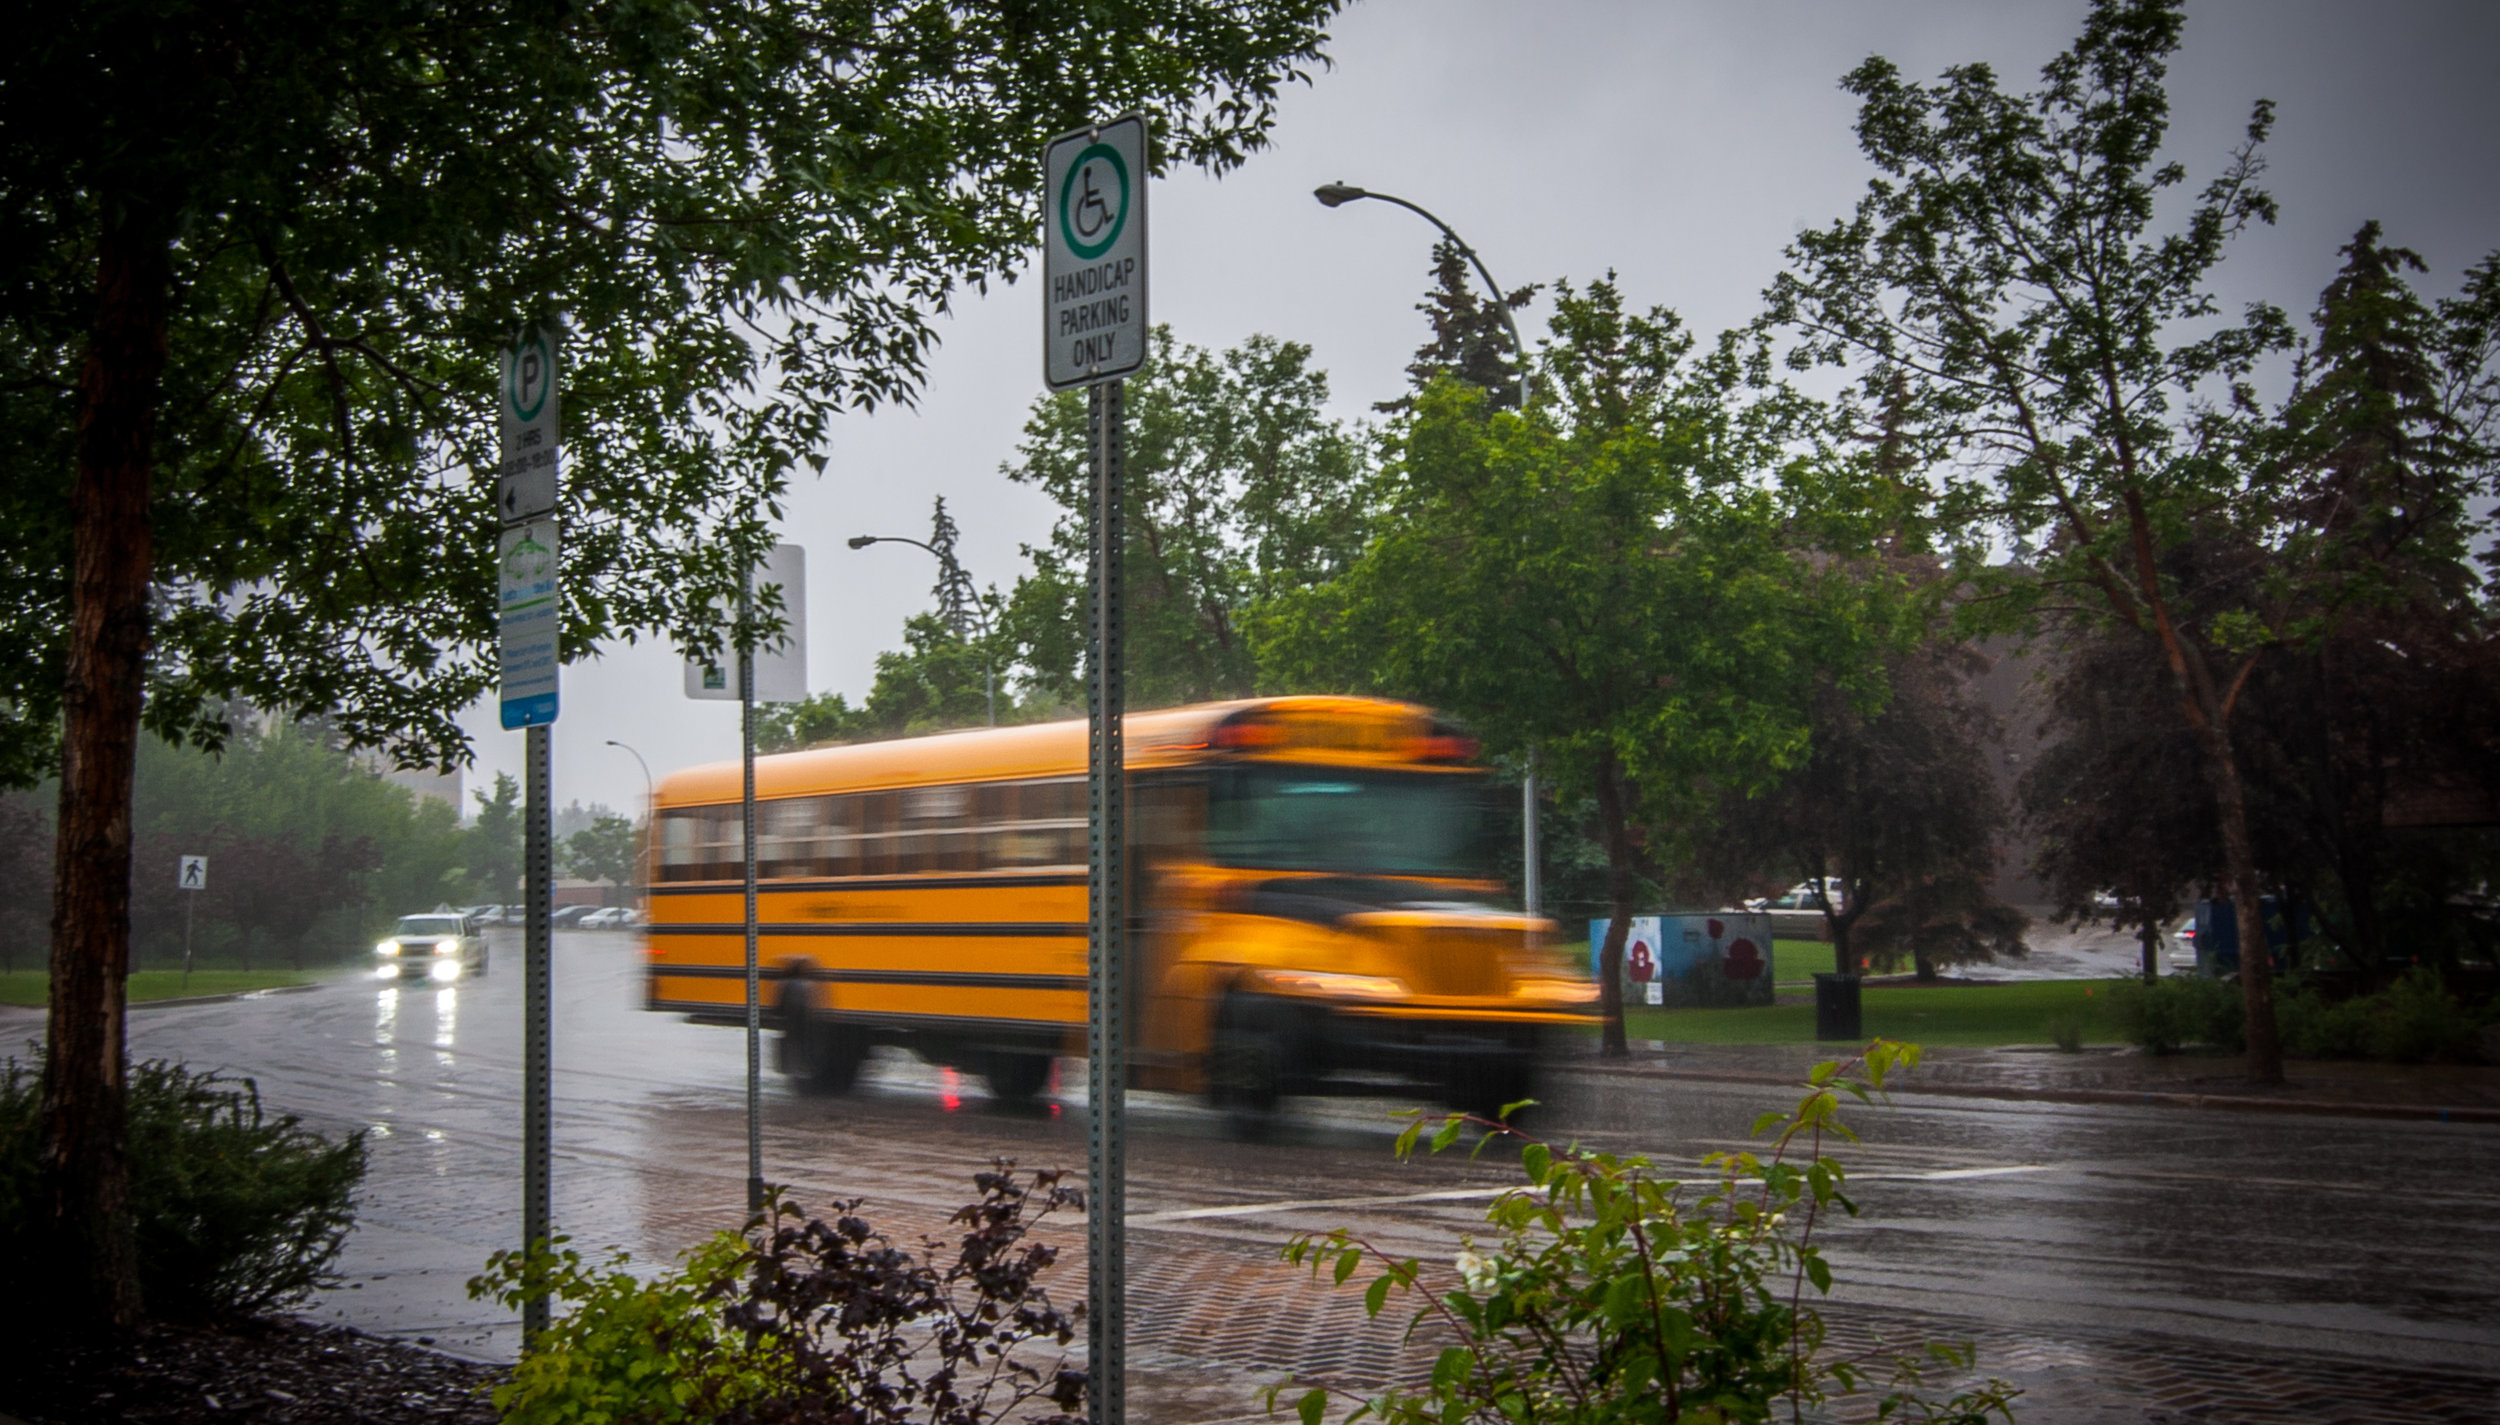 5 Great Tips For Back-To-School Driver Safety -